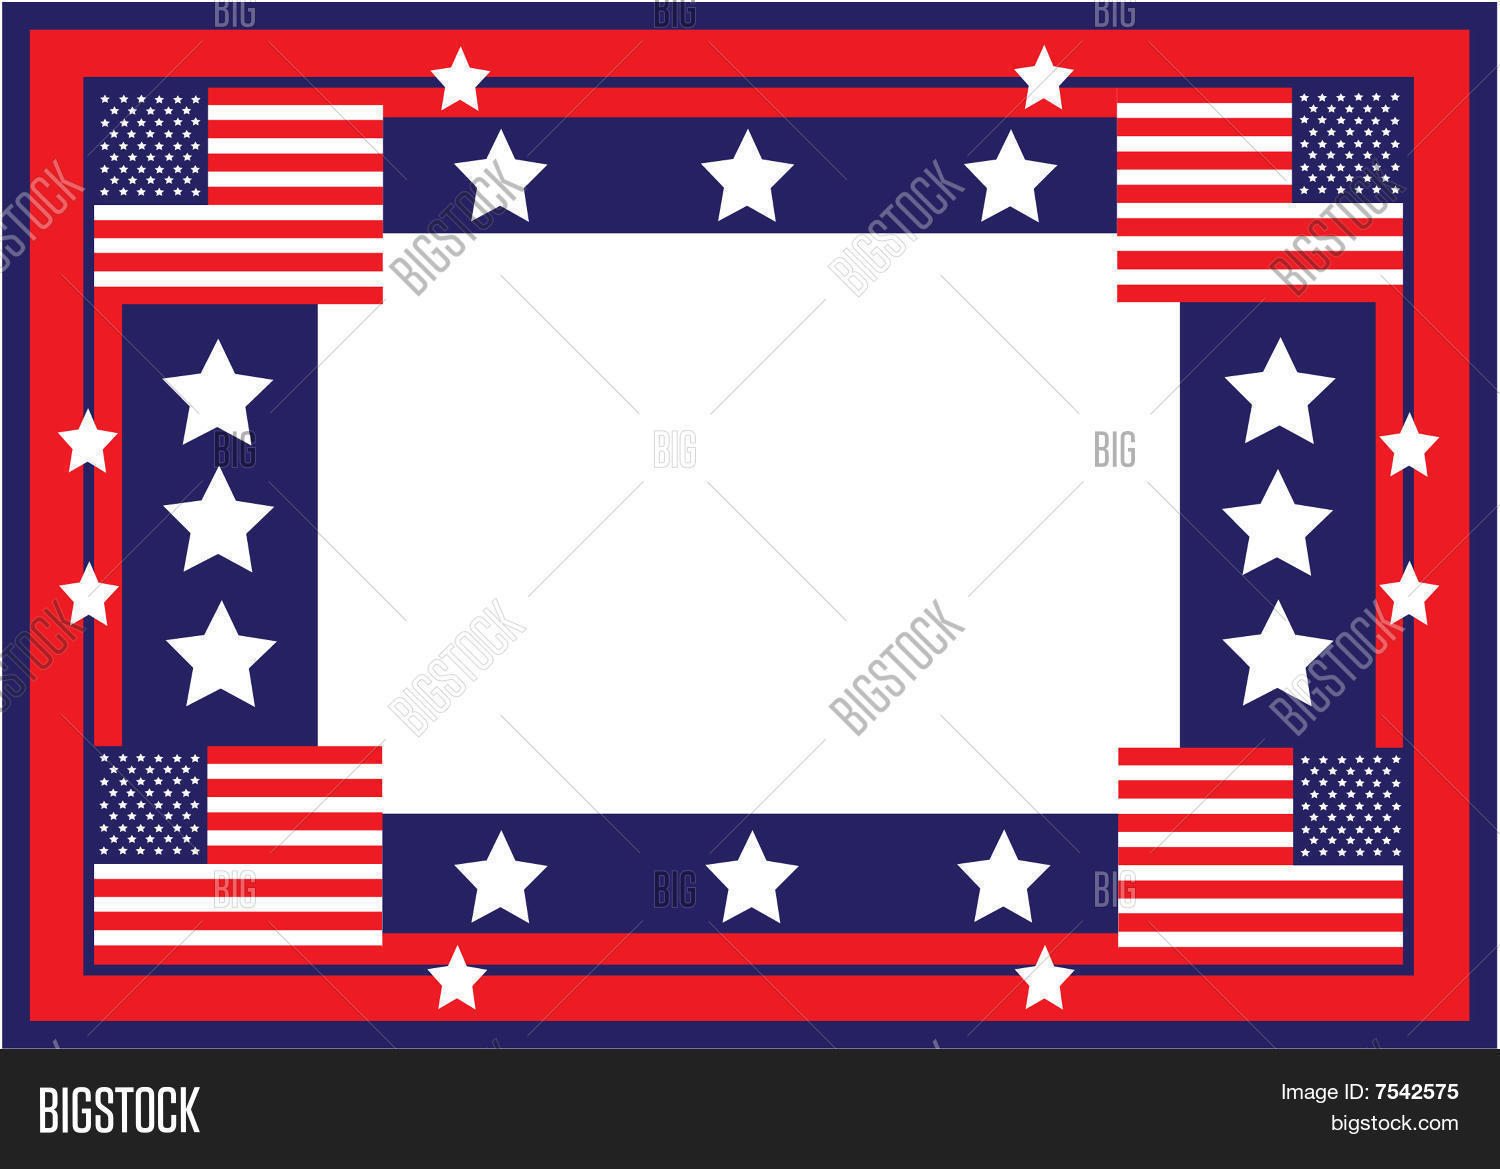 American Flag Frame Image & Photo (Free Trial) | Bigstock